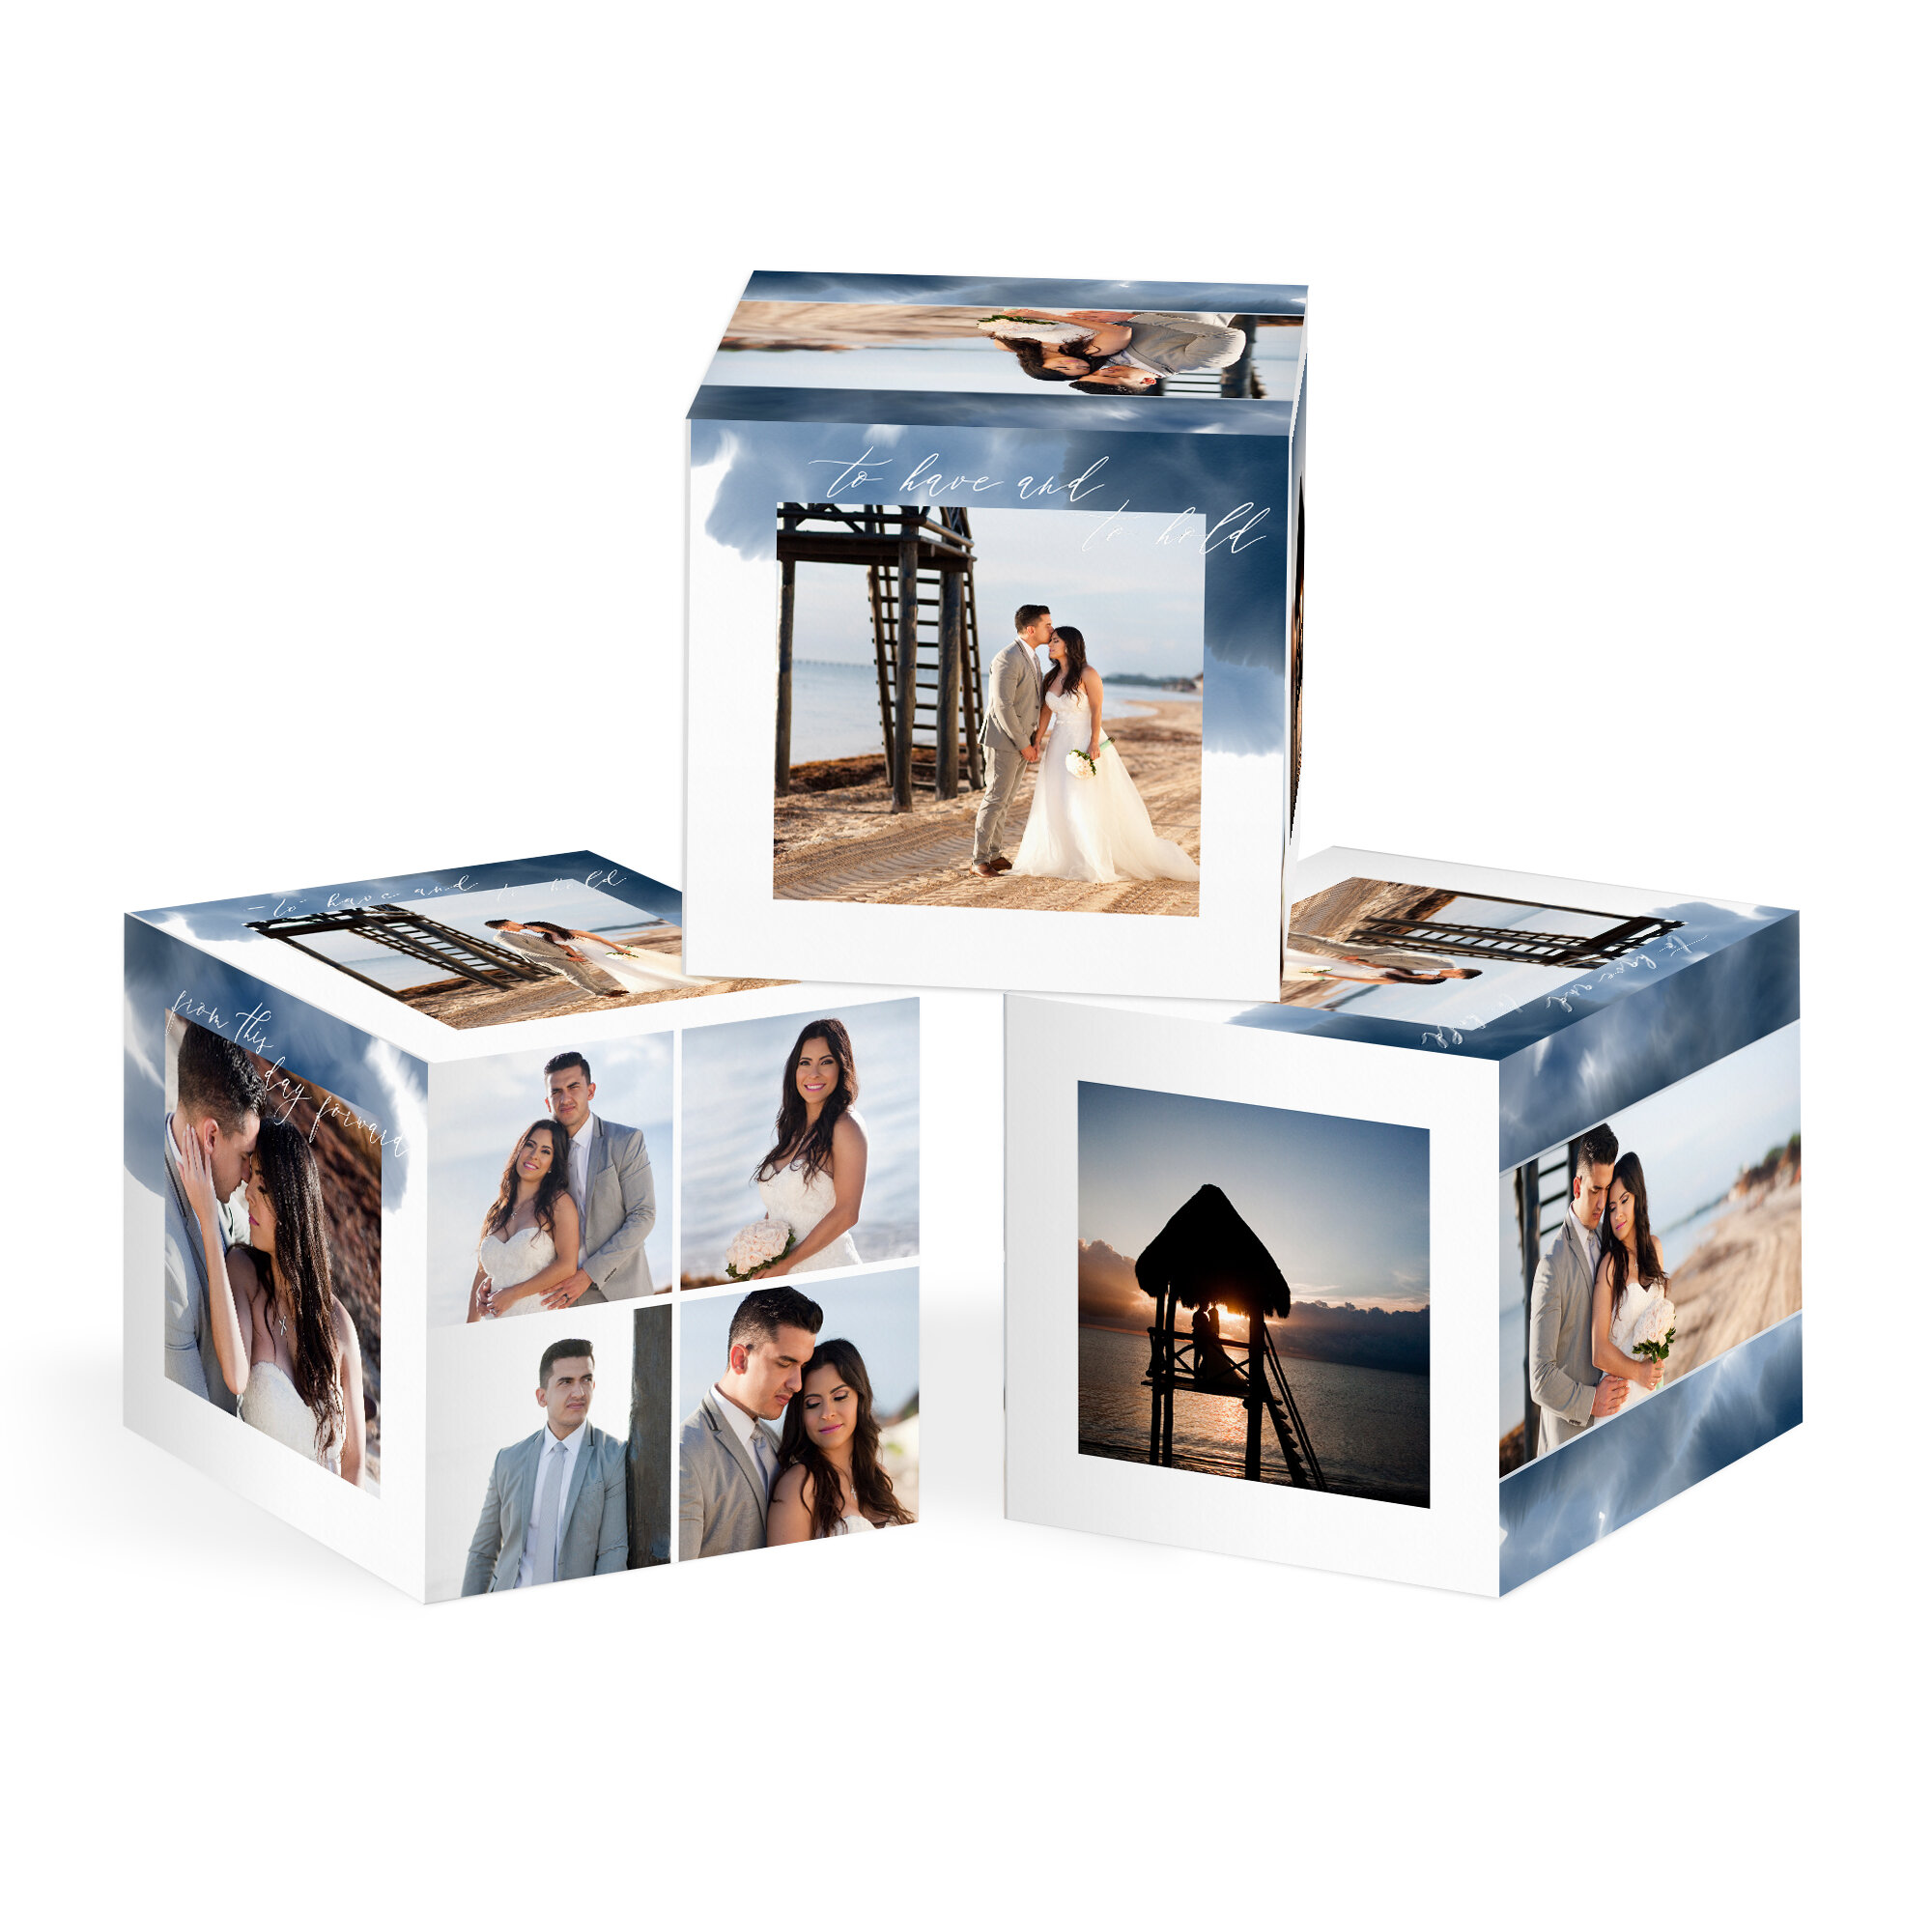 An Image Cube comes in 8x8 or 4x4 sizes and offers 6 unique sides to display your beautiful photos. Turn it each time you walk by to display your favorite. Give them as gifts to your parents. They make a great statement.